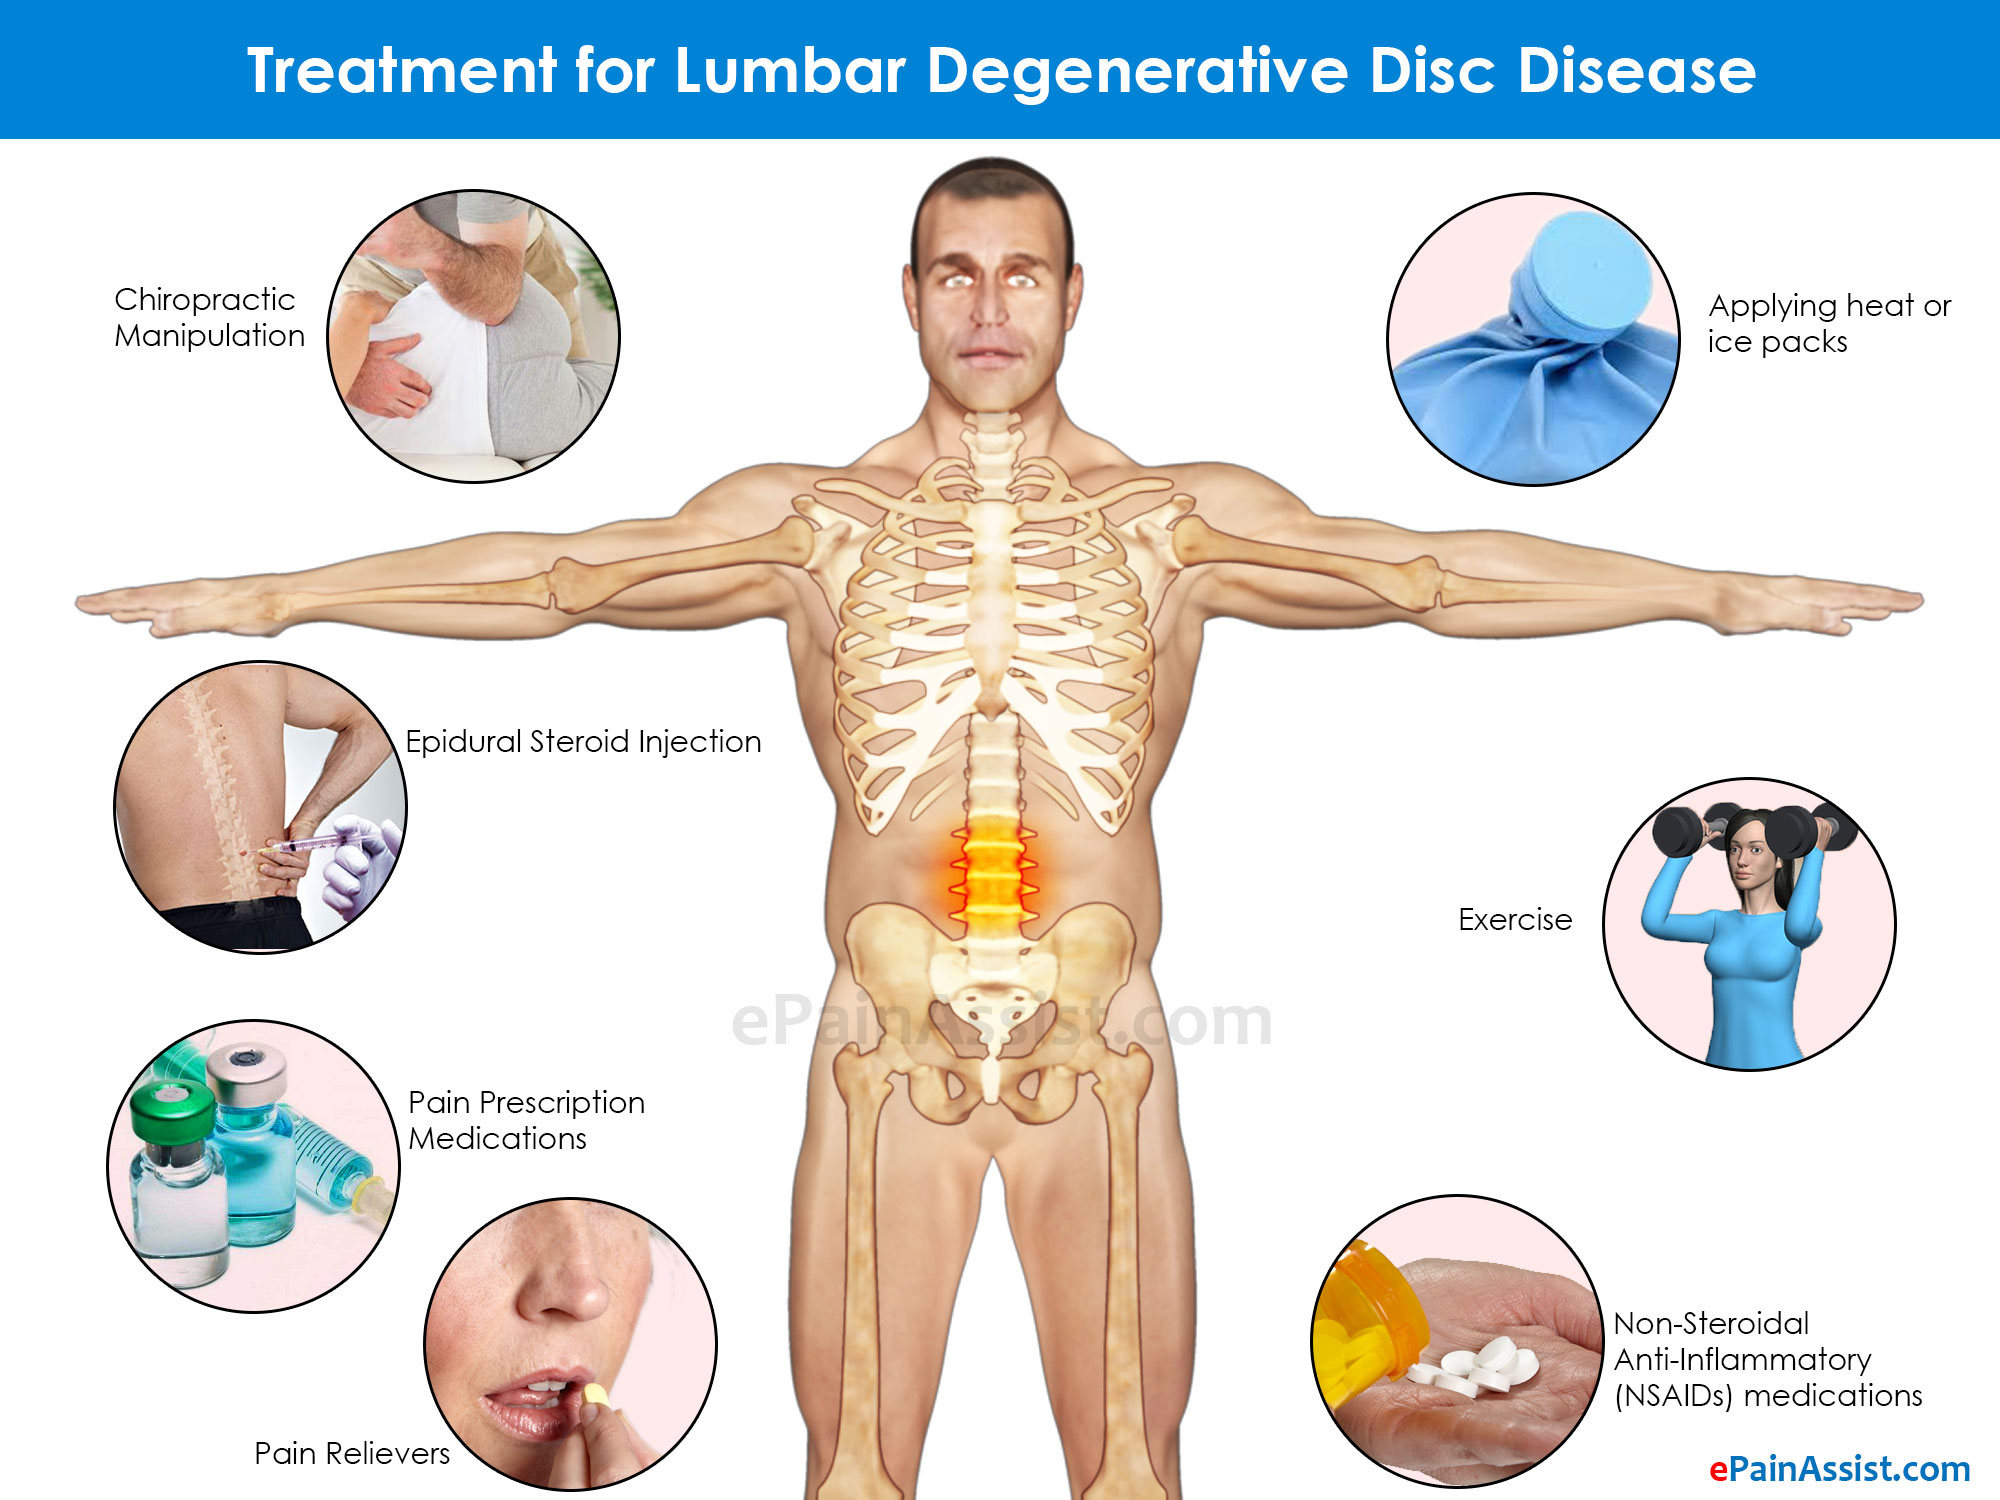 Treatment for Lumbar Degenerative Disc Disease